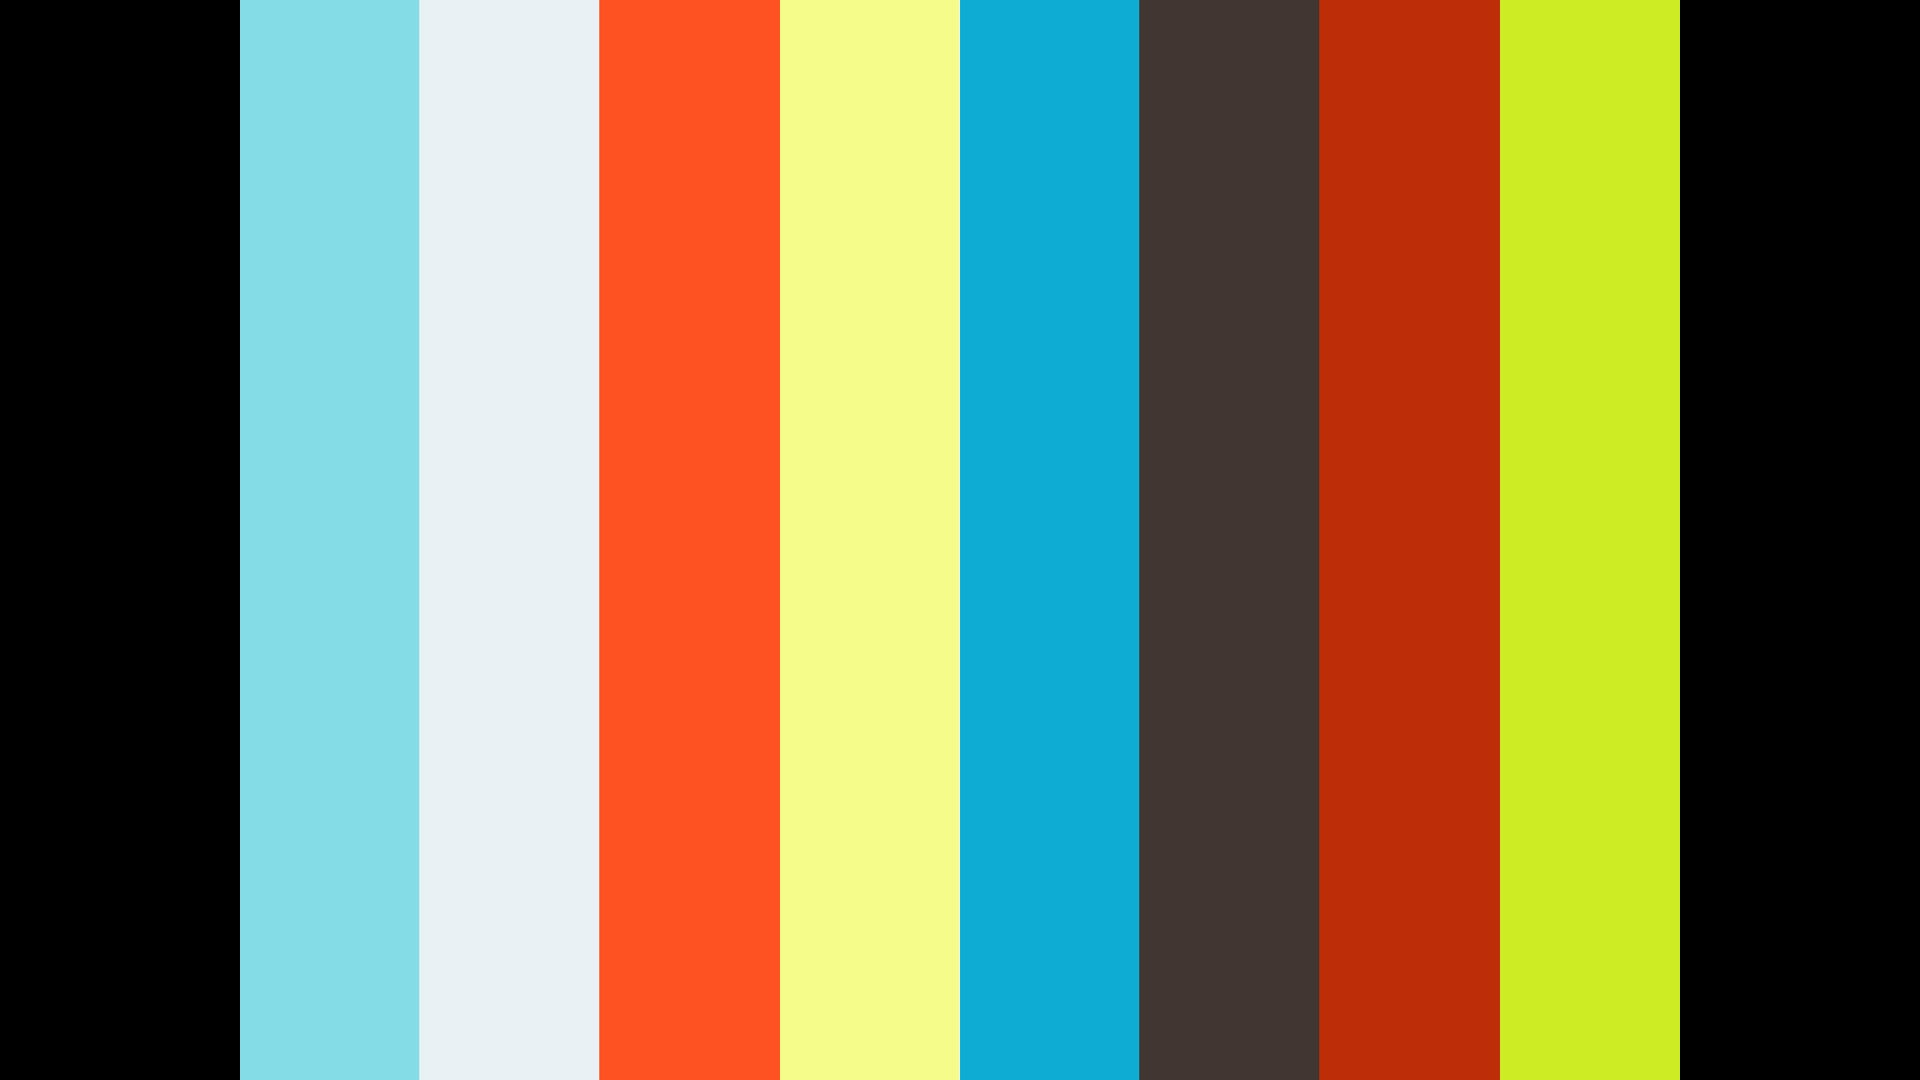 August 4, 2019; Reverend Dr. Betty Long